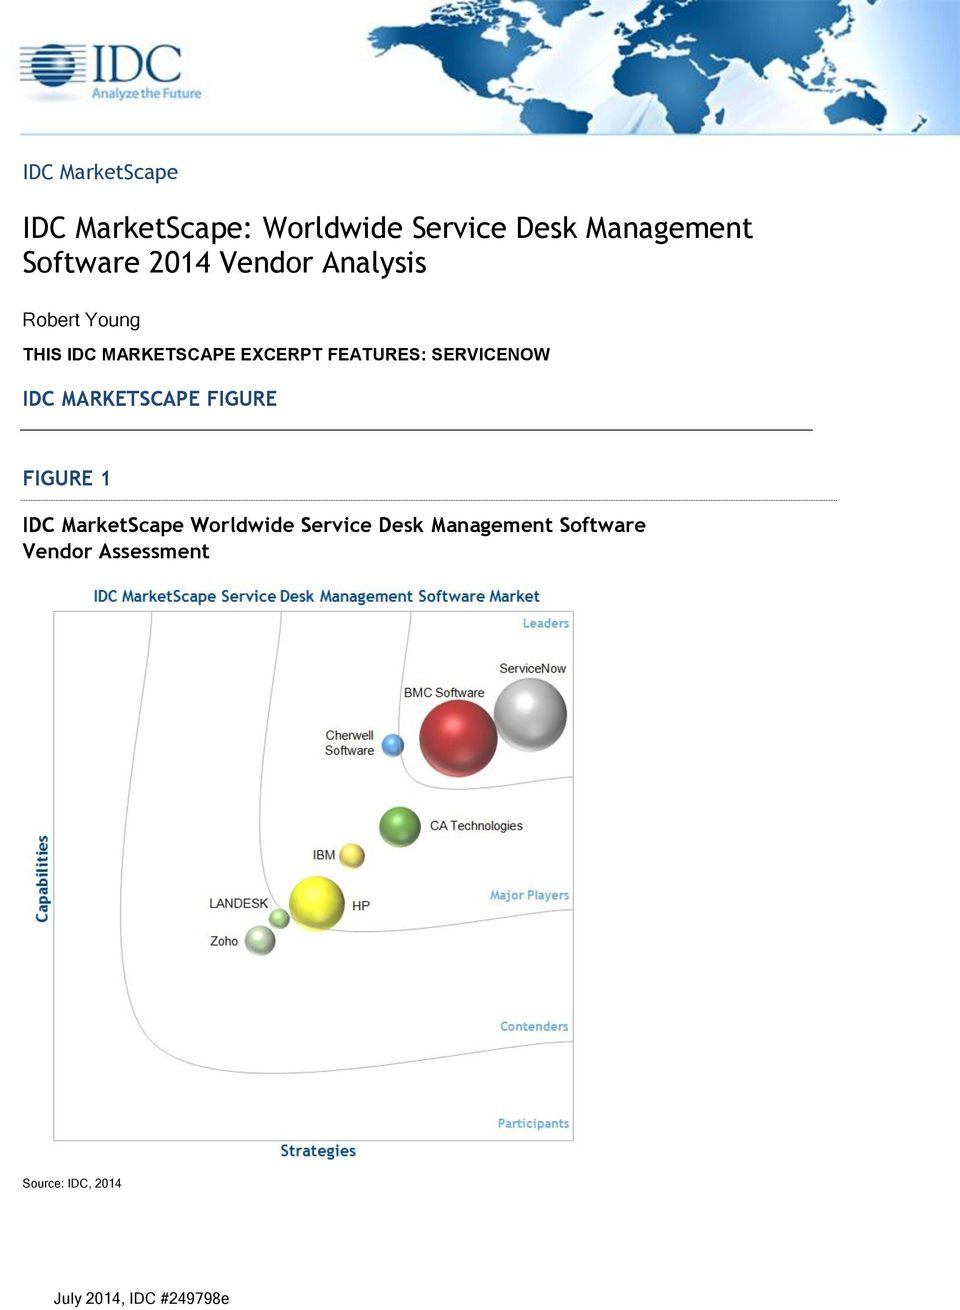 FEATURES: SERVICENOW IDC MARKETSCAPE FIGURE FIGURE 1 IDC MarketScape